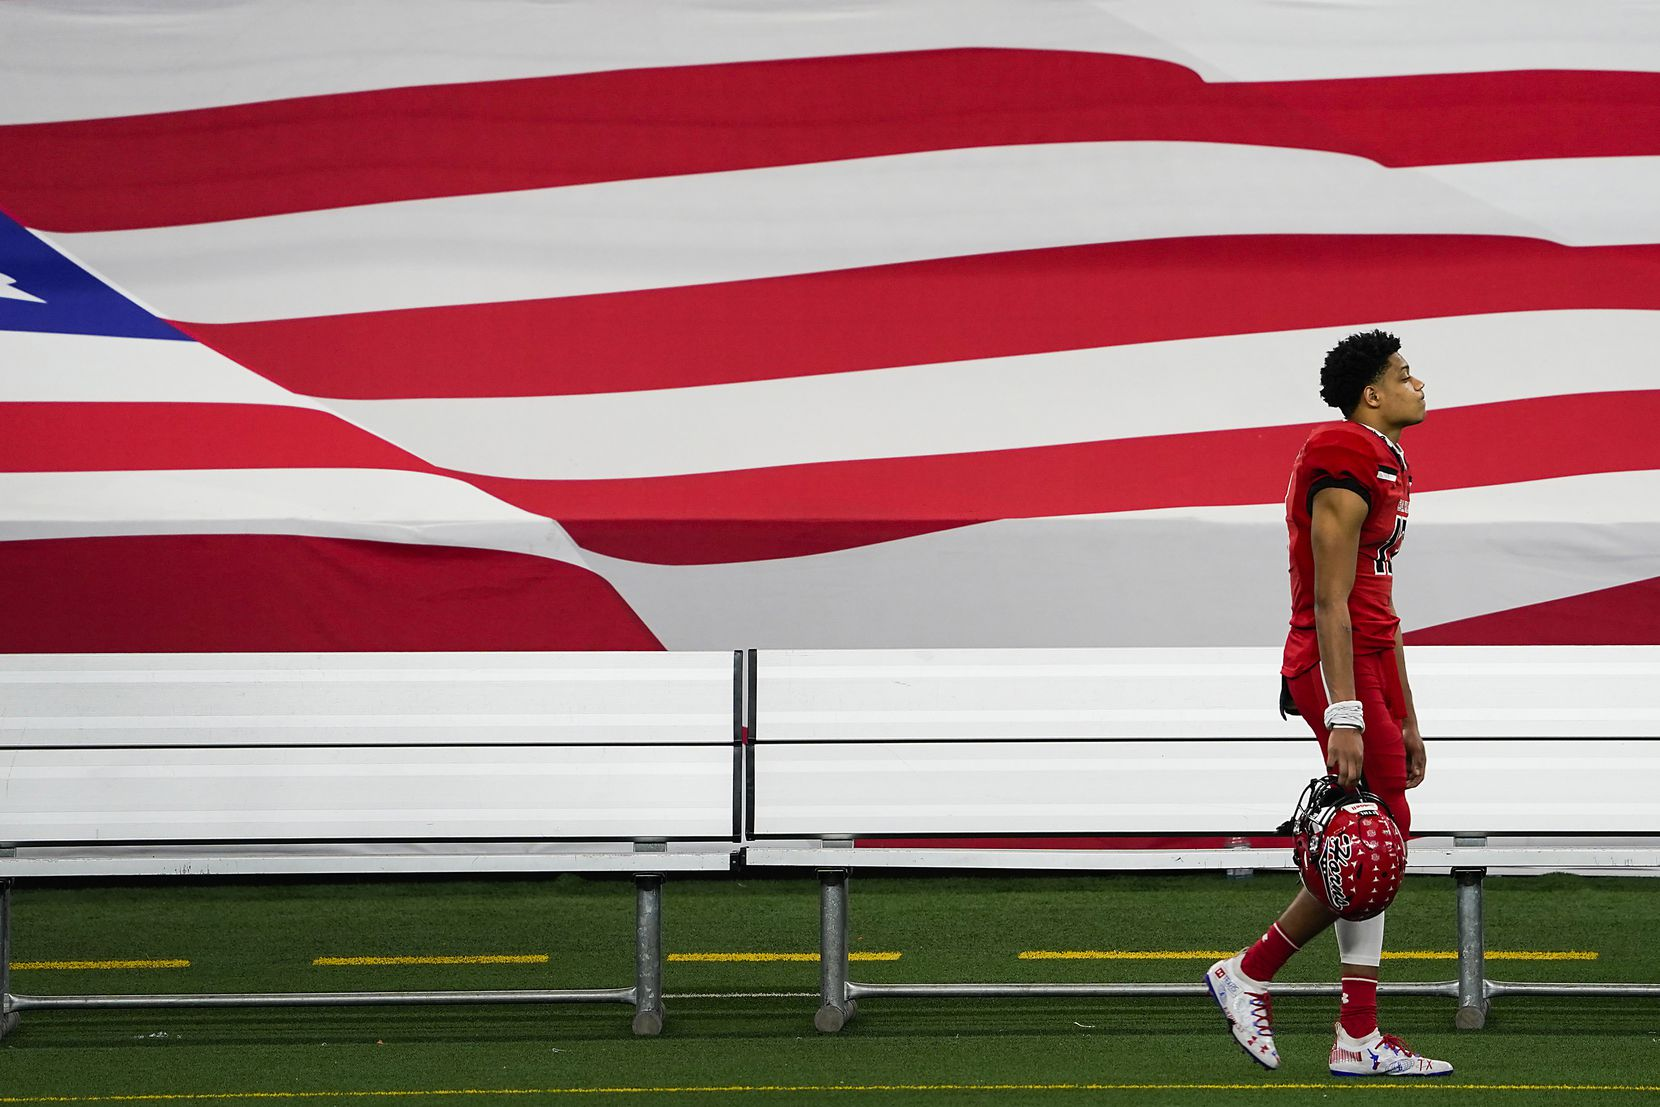 Cedar Hill wide receivers Javien Clemmer leaves the field after a loss to Katy in the Class 6A Division II state football championship game at AT&T Stadium on Saturday, Jan. 16, 2021, in Arlington, Texas. Katy won the game 51-14.